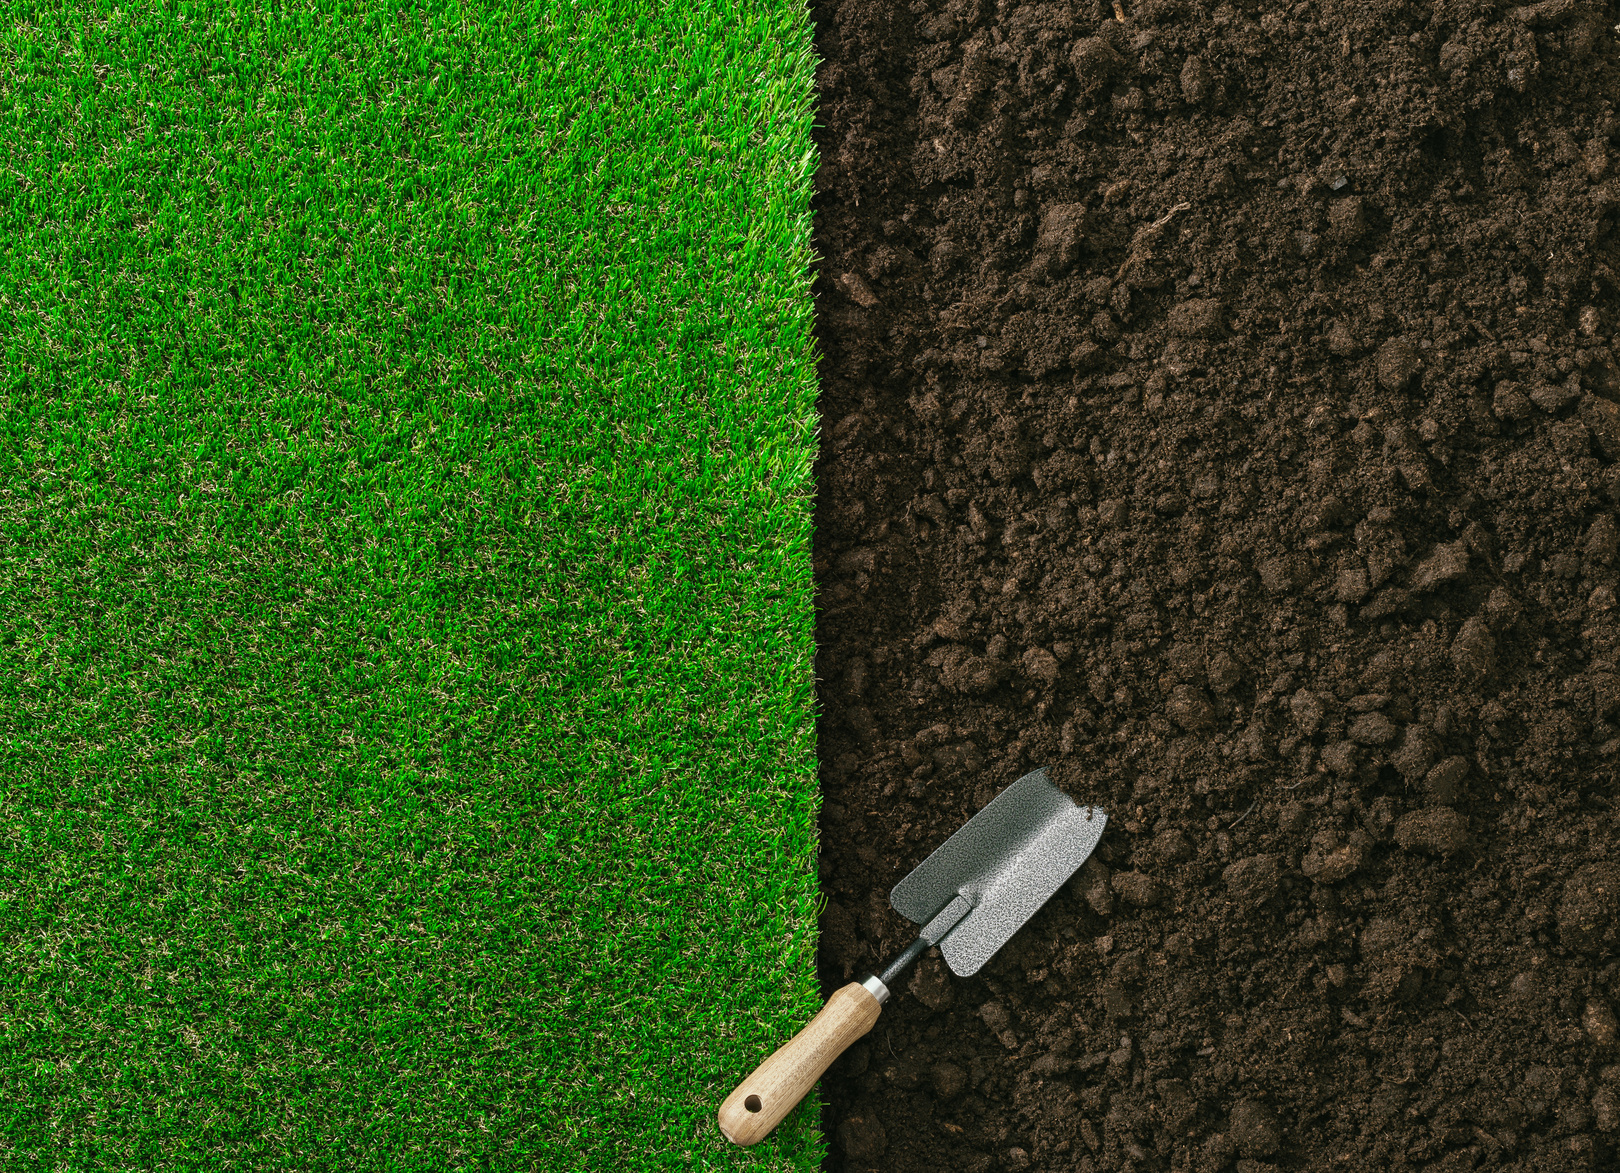 Gardening trowel on fertile soil and grass,